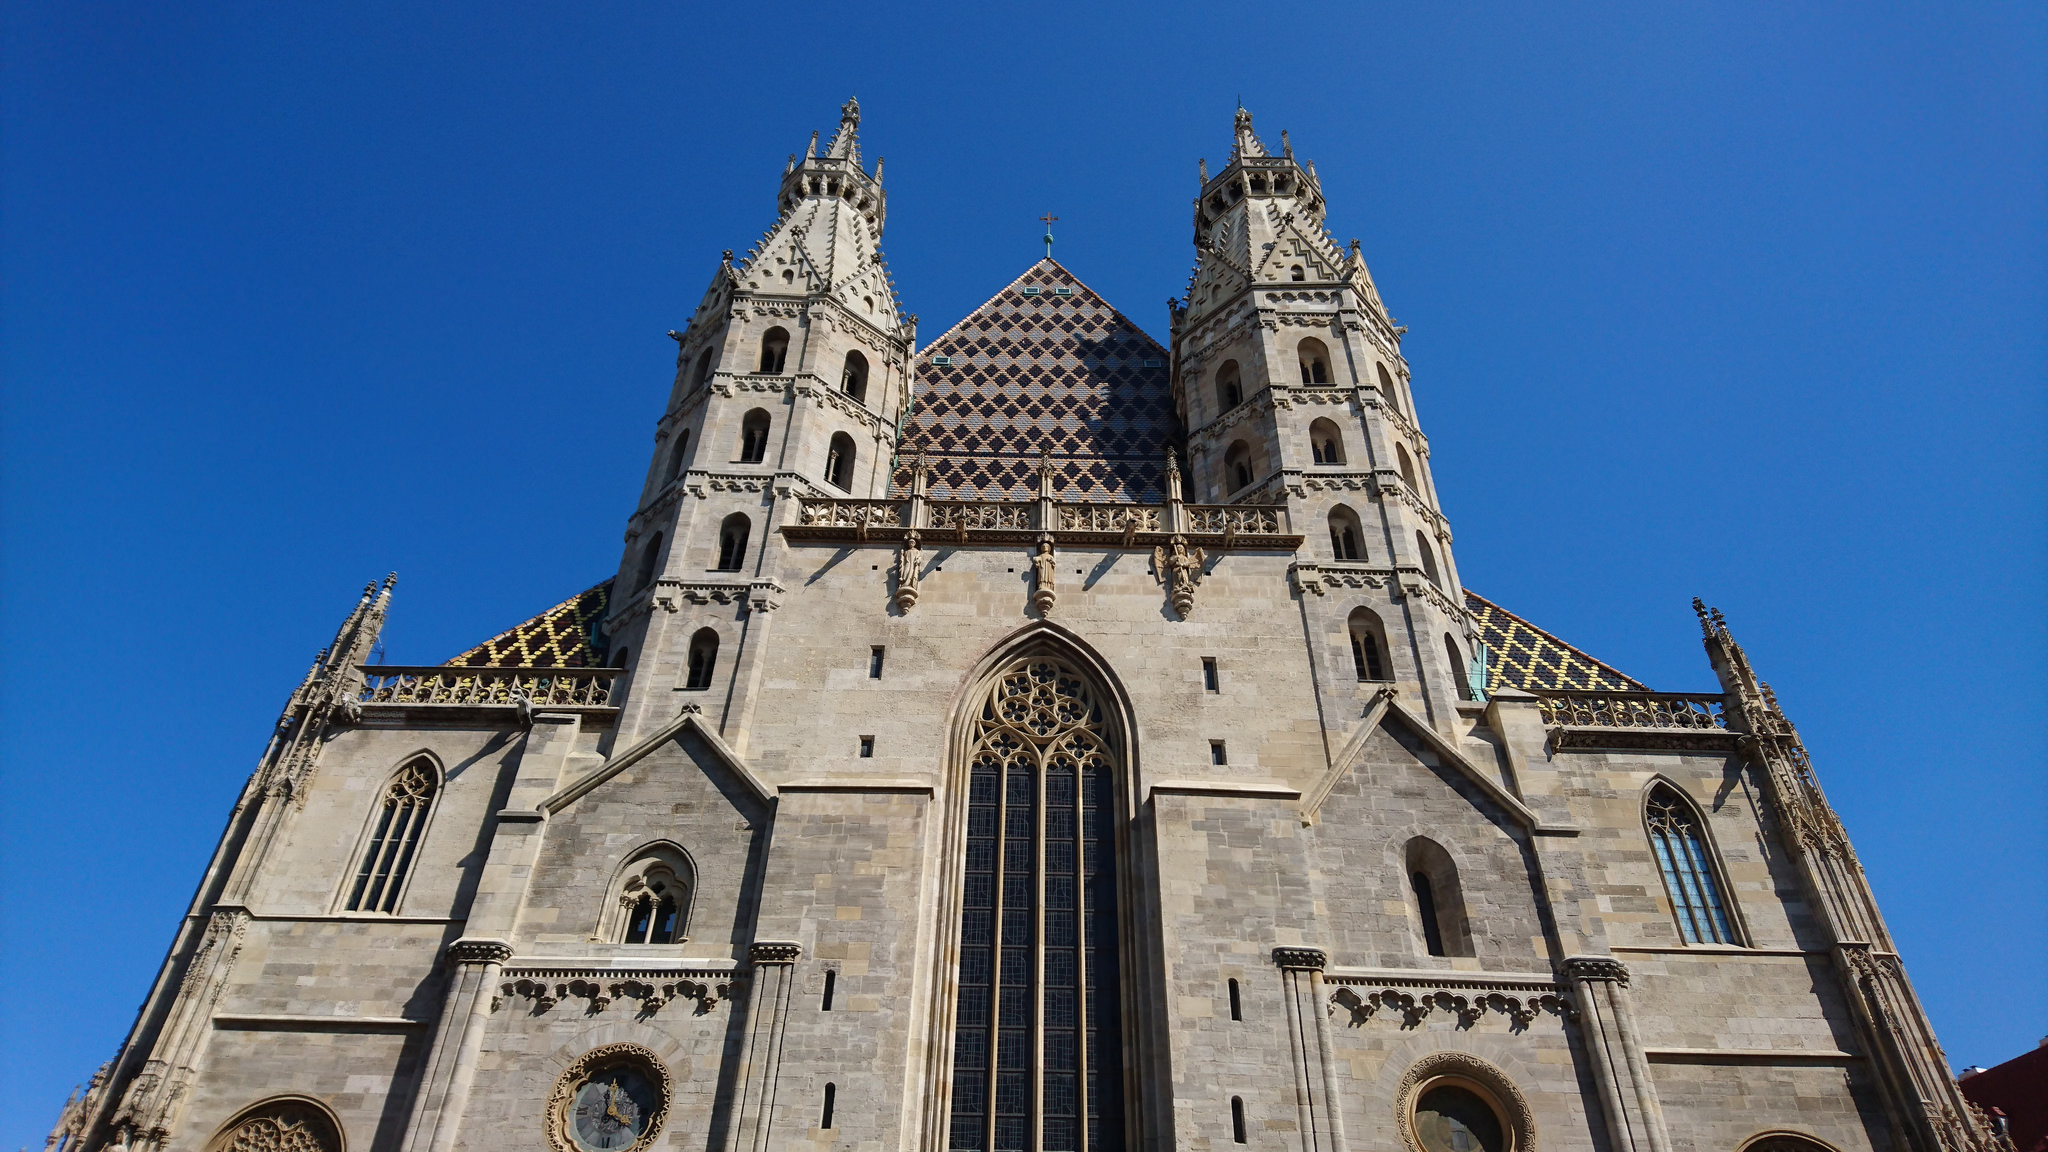 There are many beautiful churches and cathedrals in the city. Saint Stephen's cathedral is right in the heart of the shopping centre of the city.